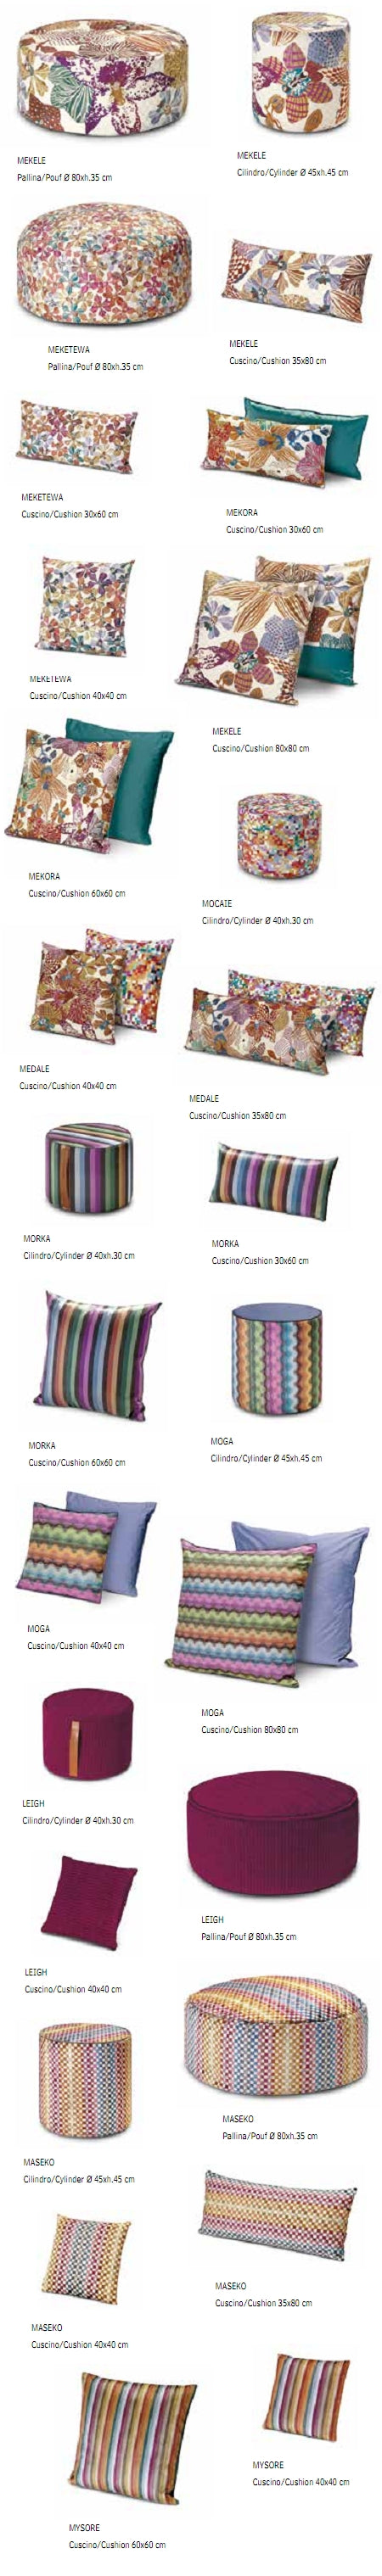 Missoni Cushion and Footstool Collection - Orchidee 160 - italydesign.com